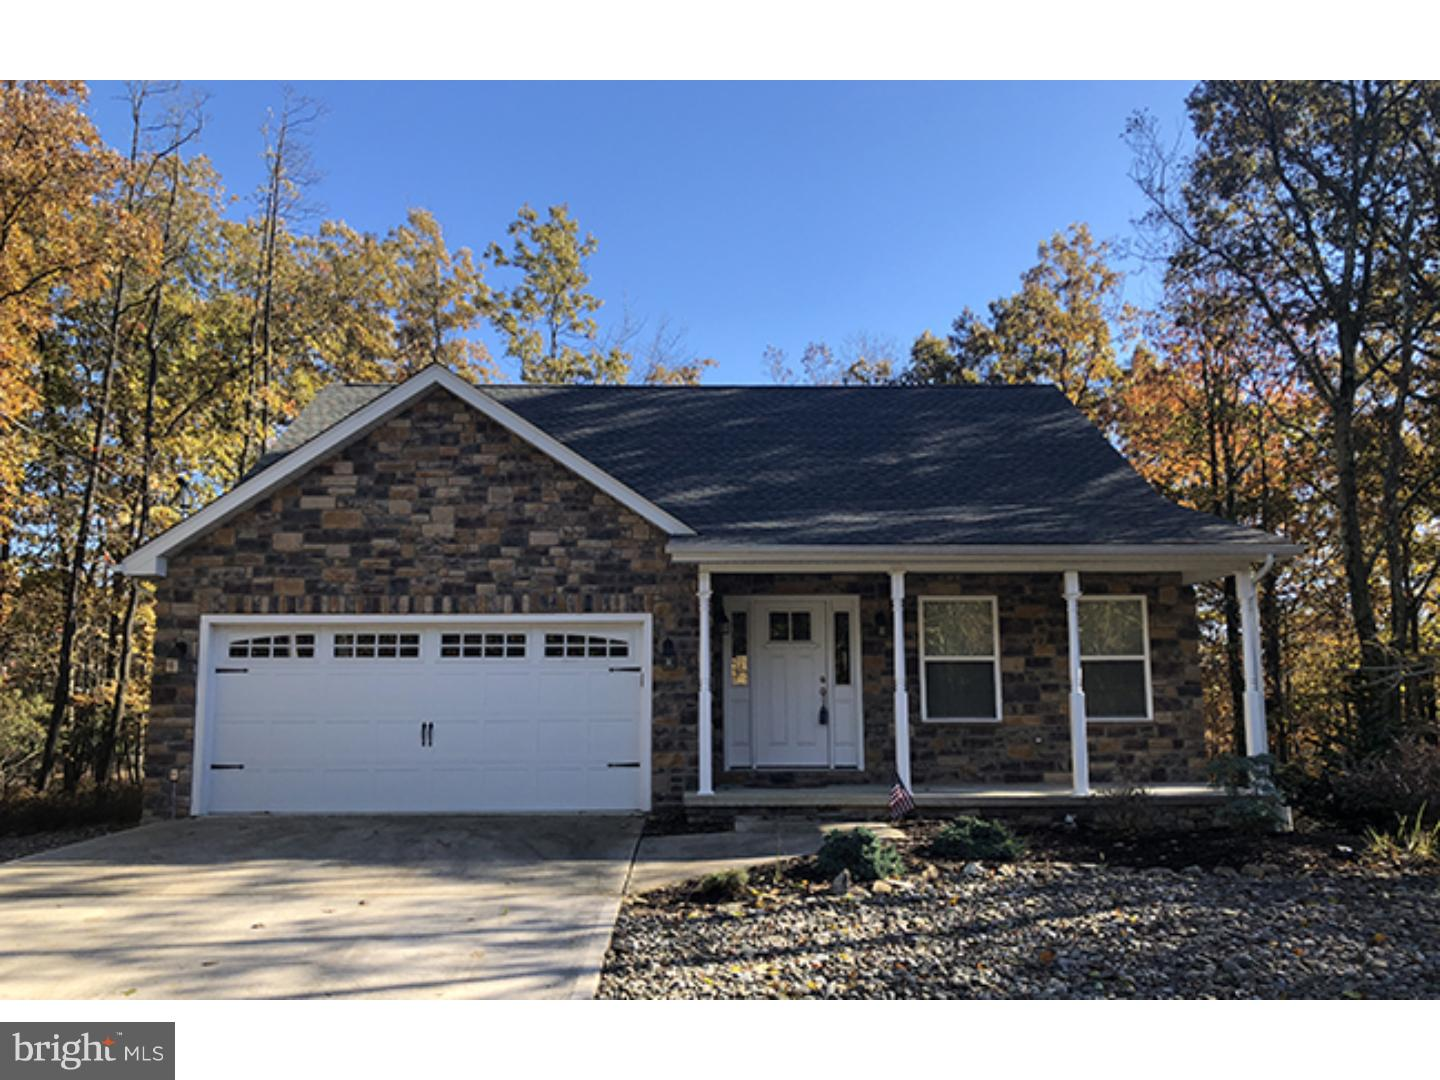 4 CASTLE PINES LANE, HAZLE TOWNSHIP, PA 18202